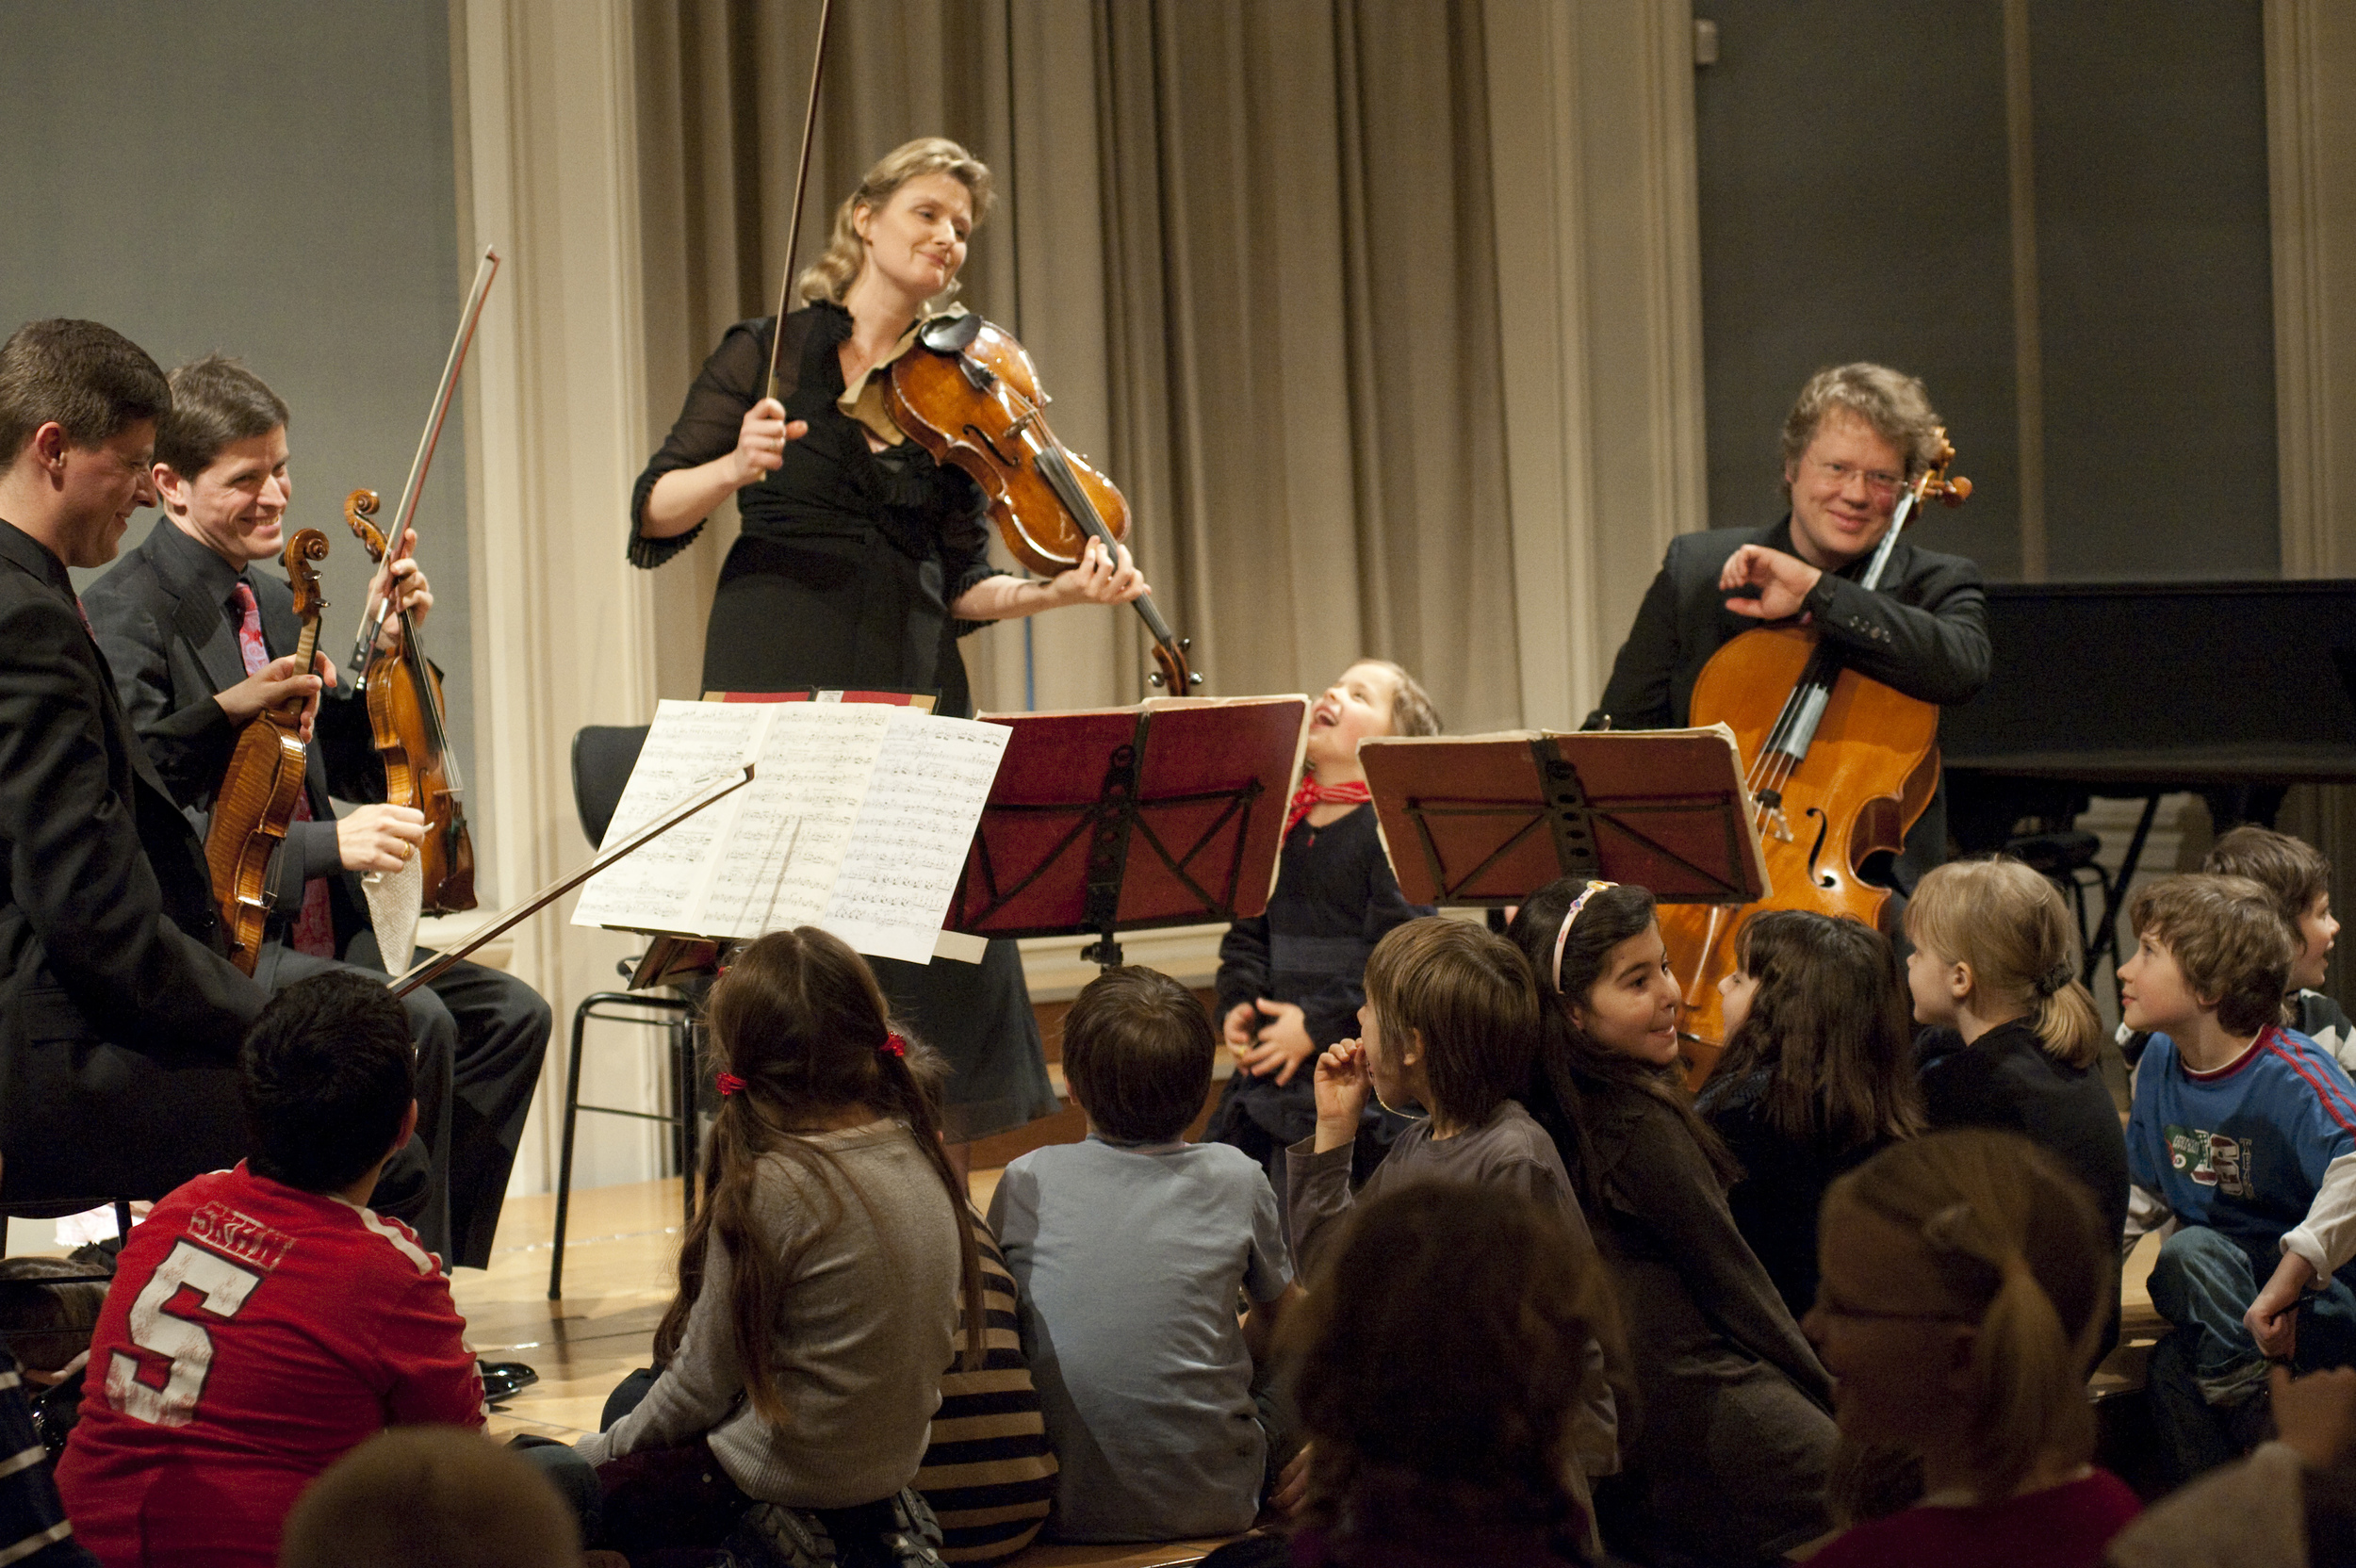 Performing for children at the Bayerische Akademie der Schönen Künste